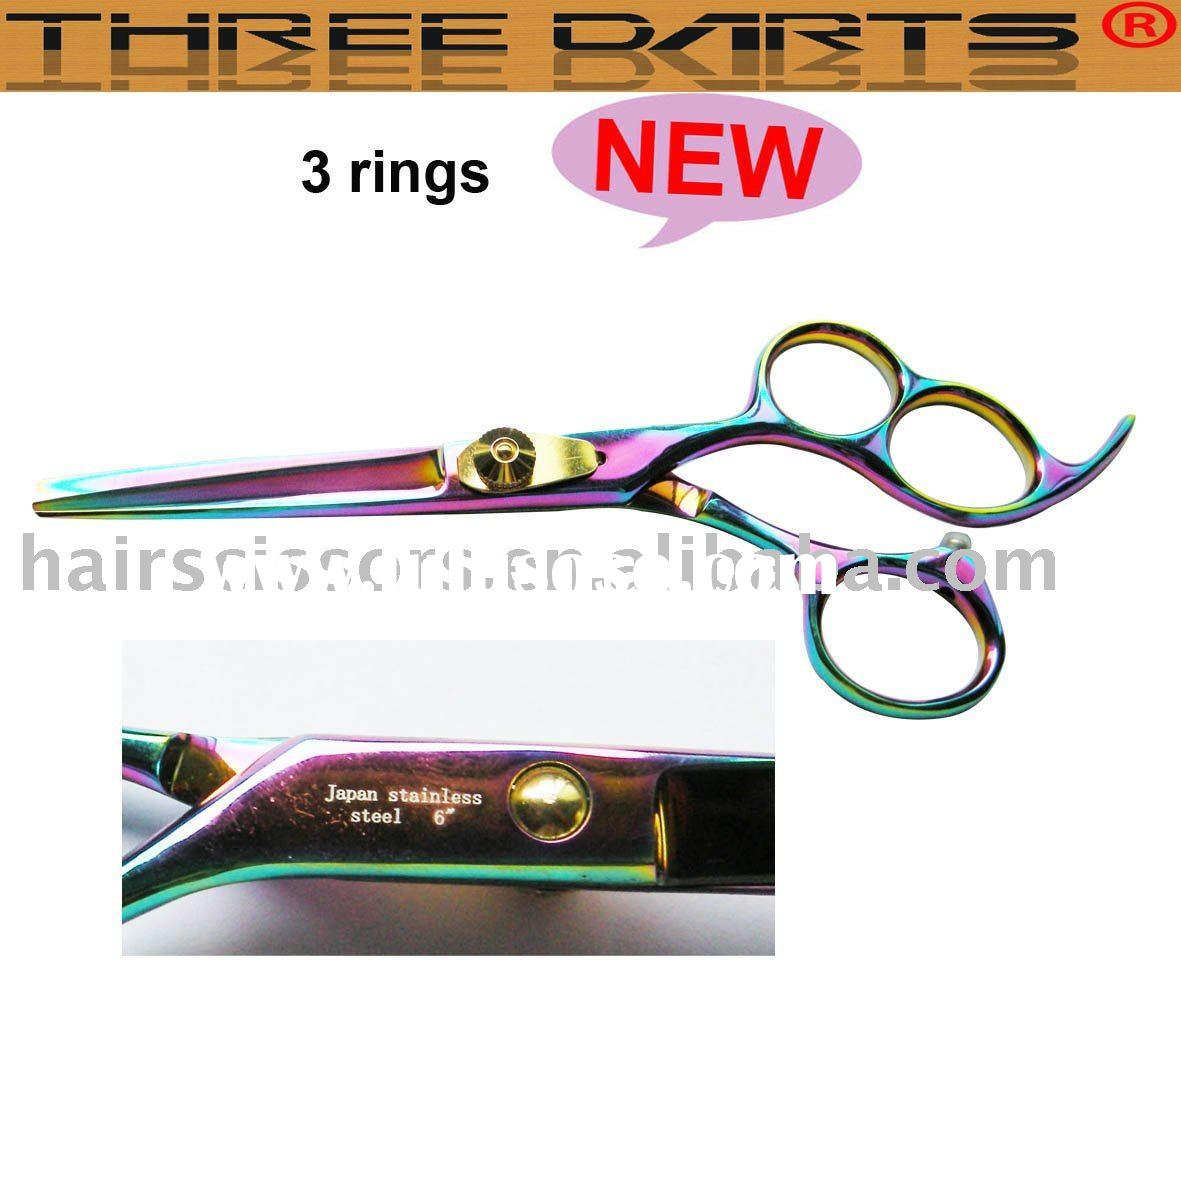 Professional Rainbow Color Barber Hair Cutting Scissors